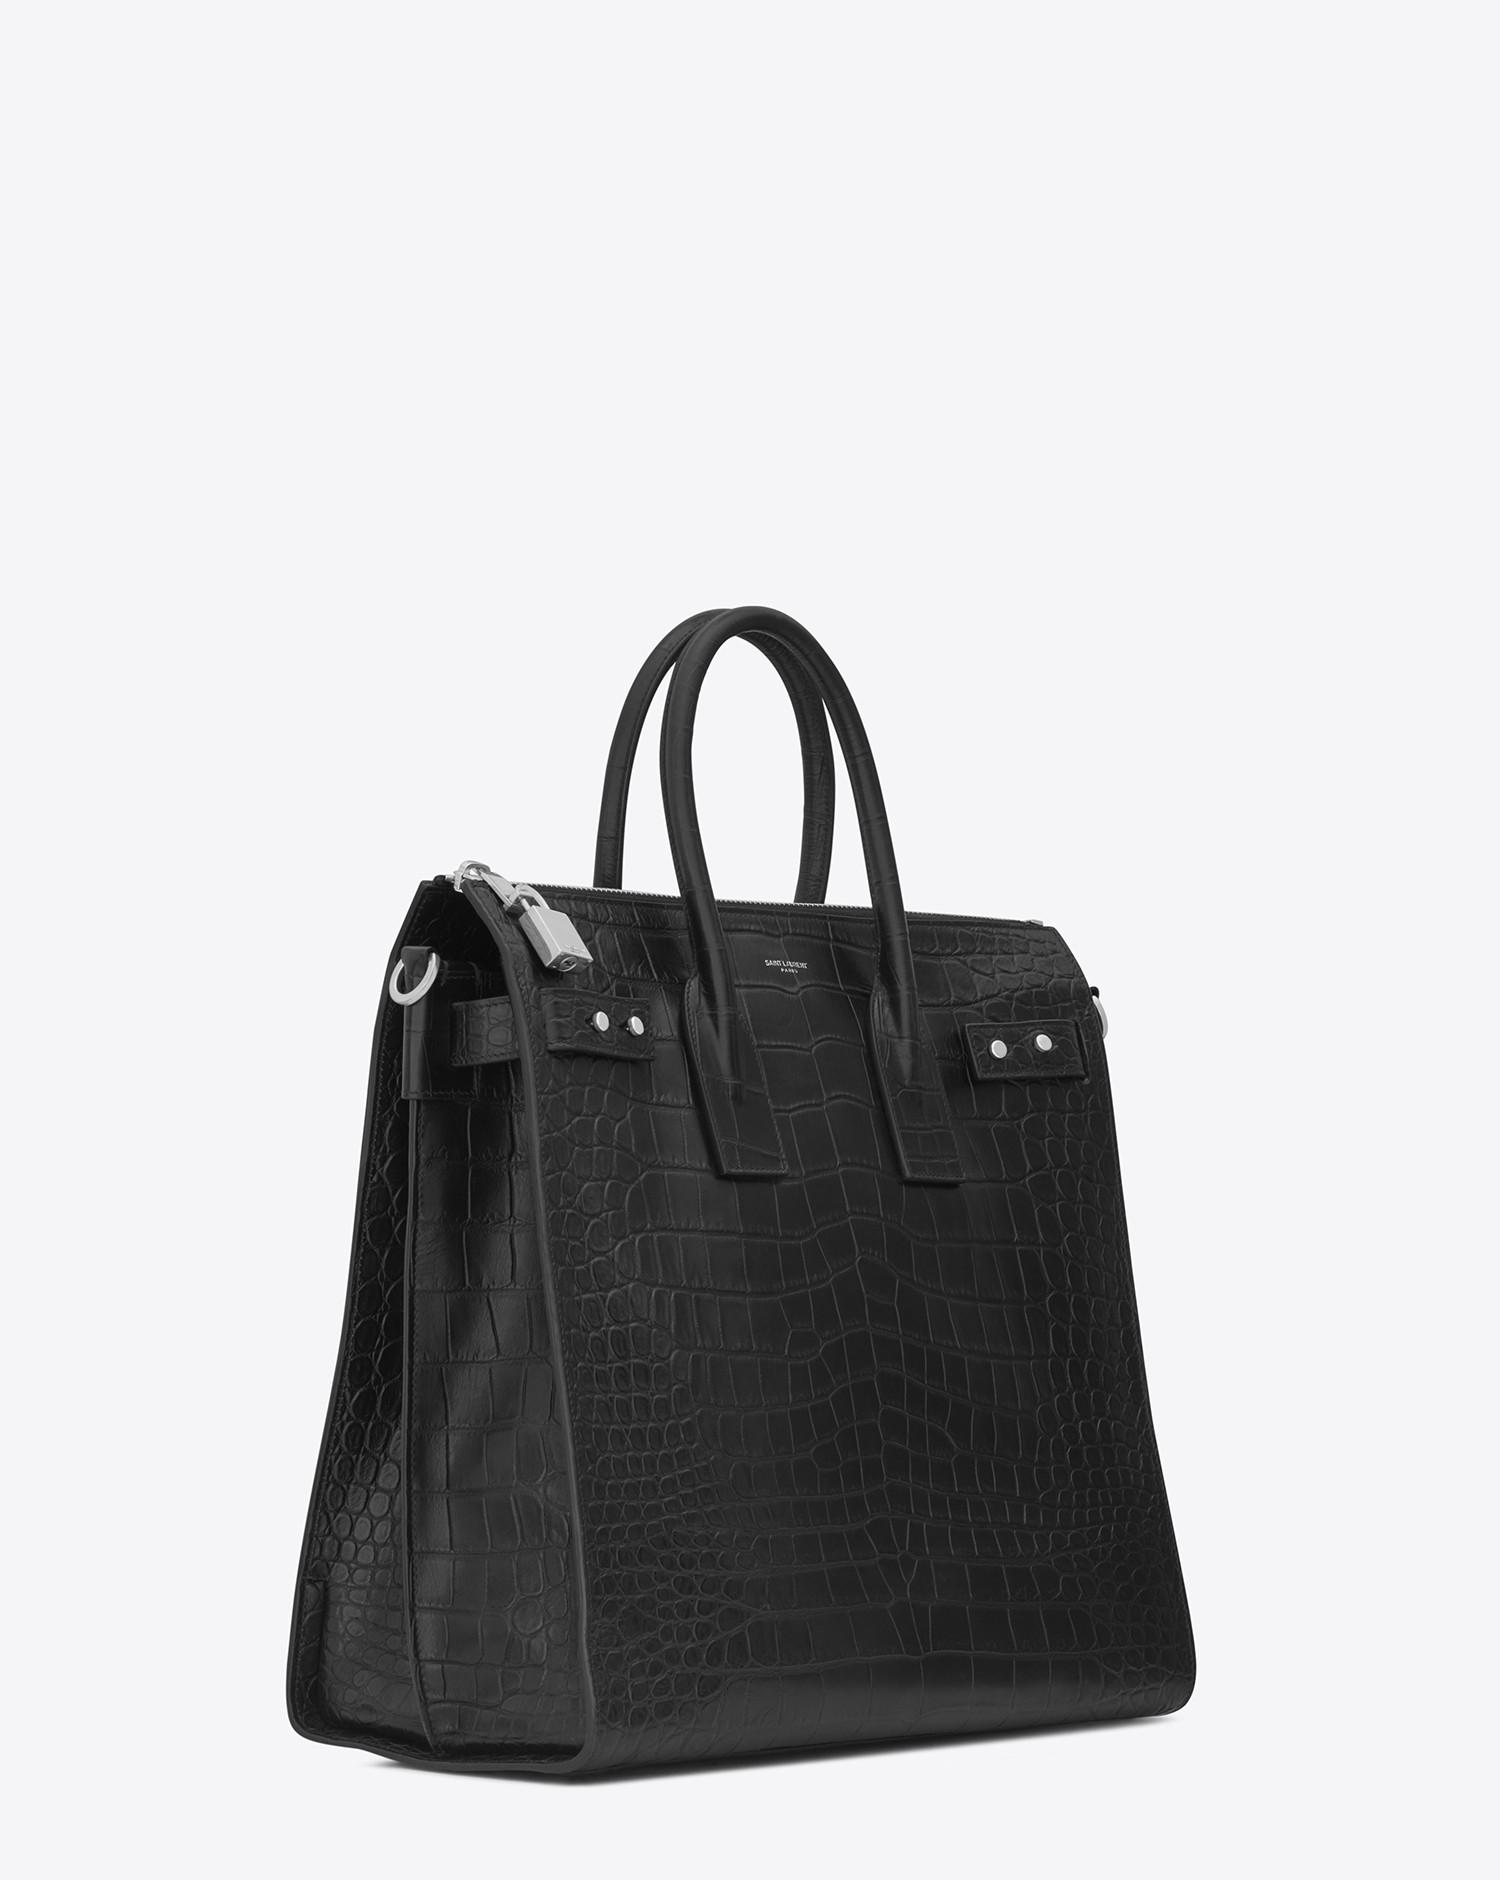 9bb0e91a440 Saint Laurent Sac De Jour North/south Tote In Crocodile Embossed ...